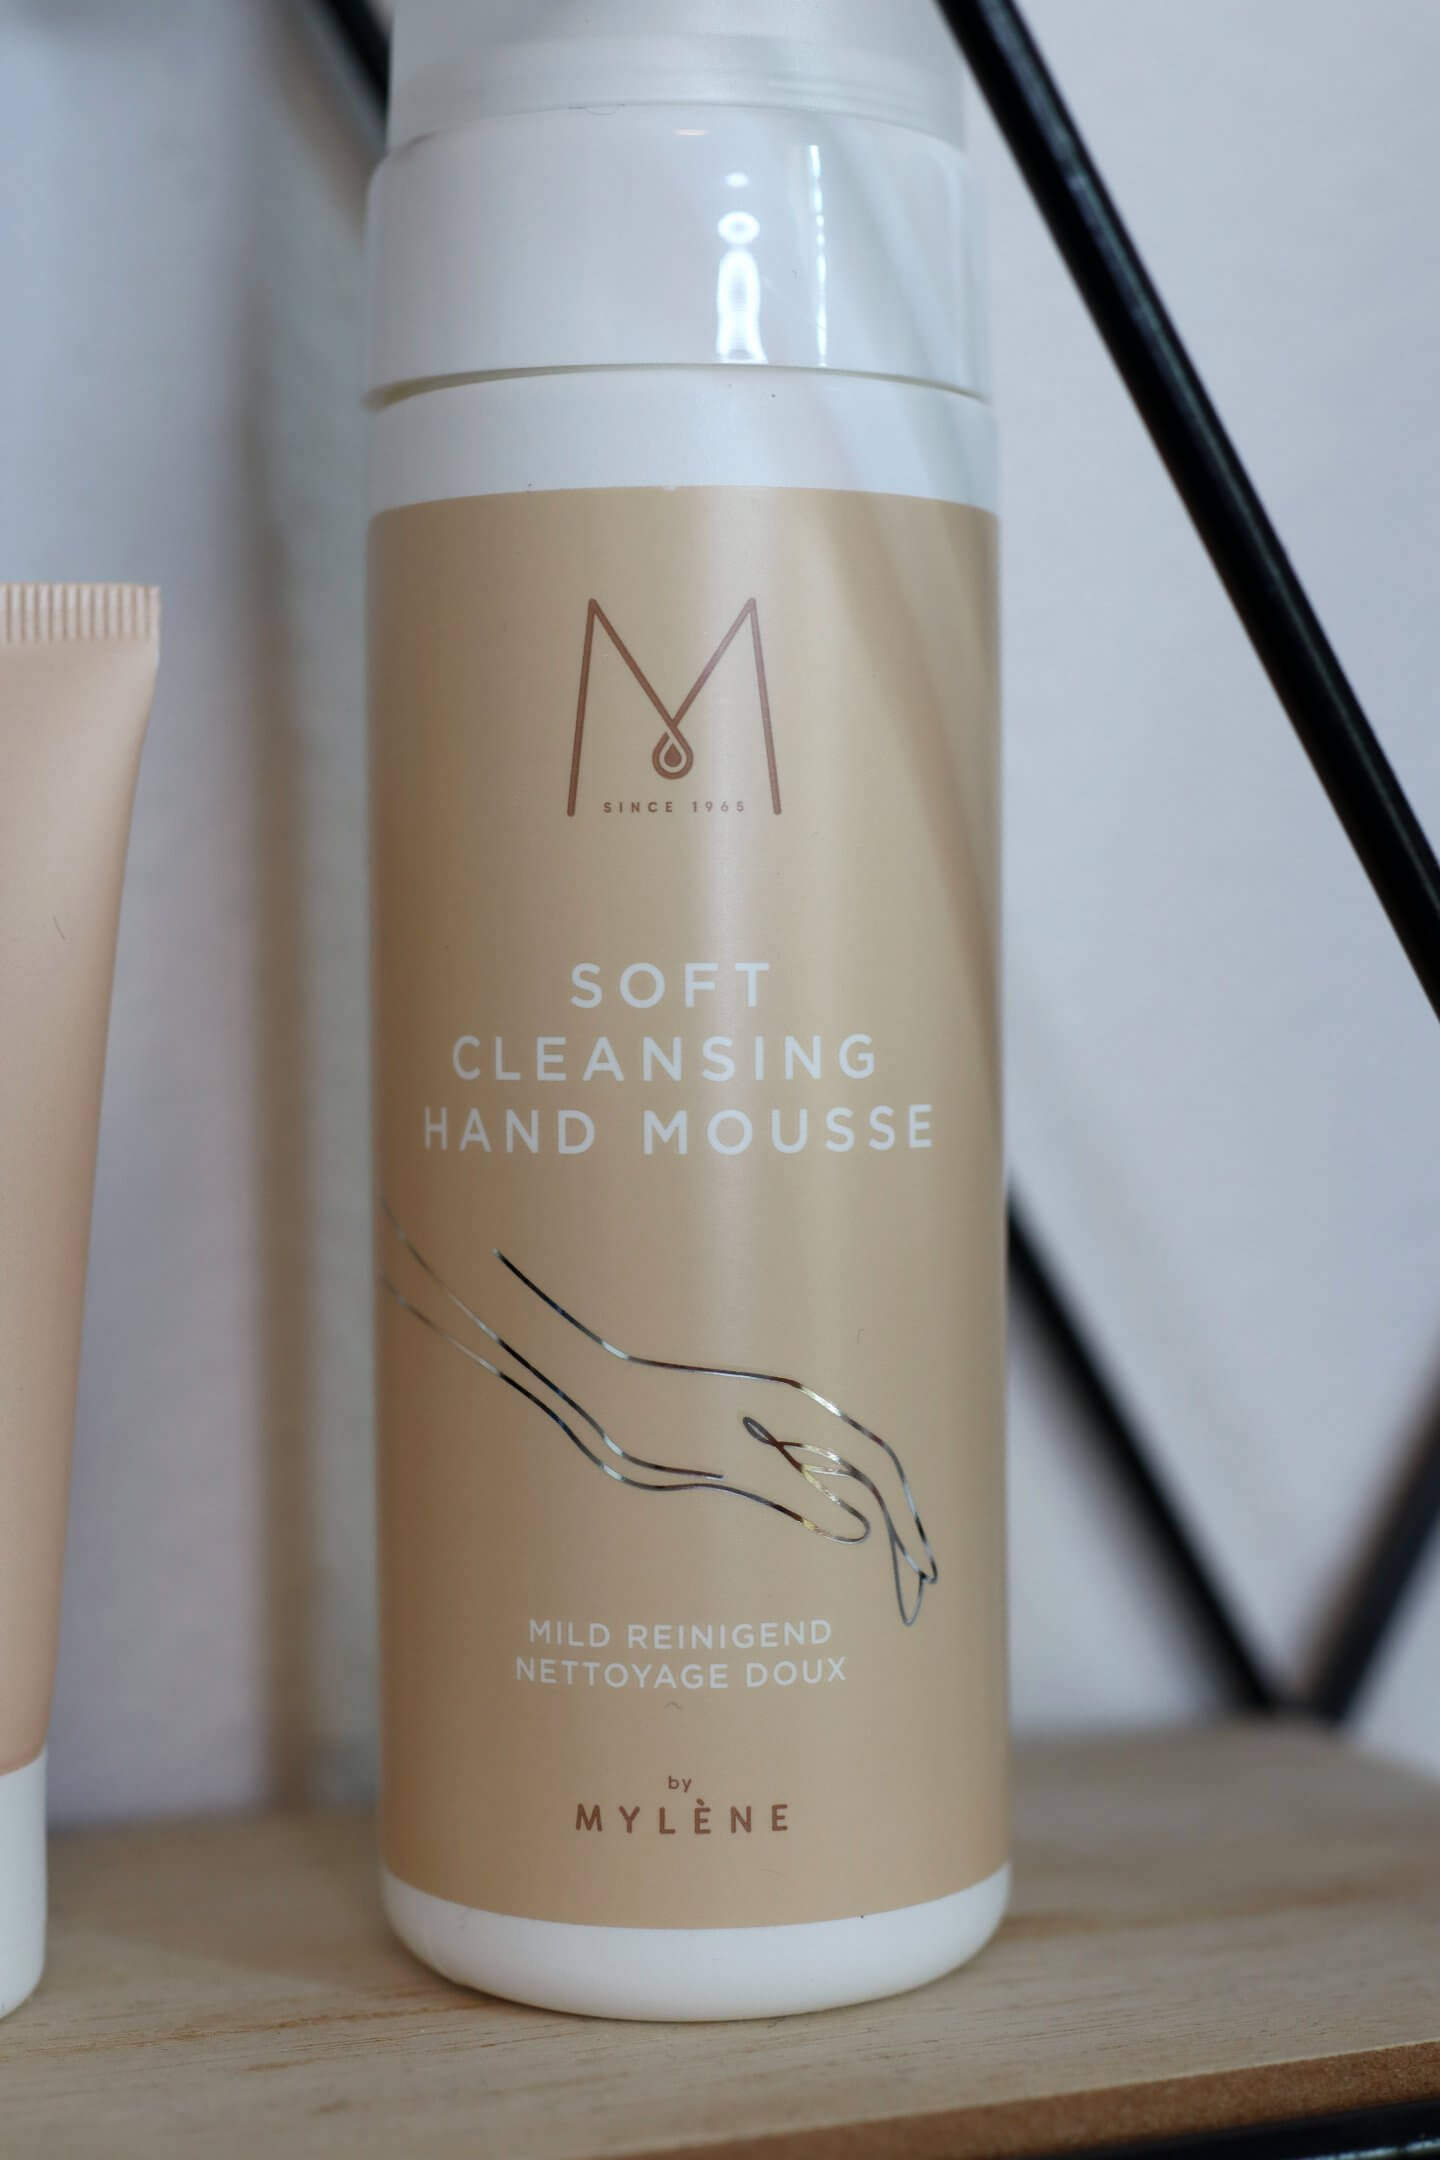 hand mousse cleanser - actually anna